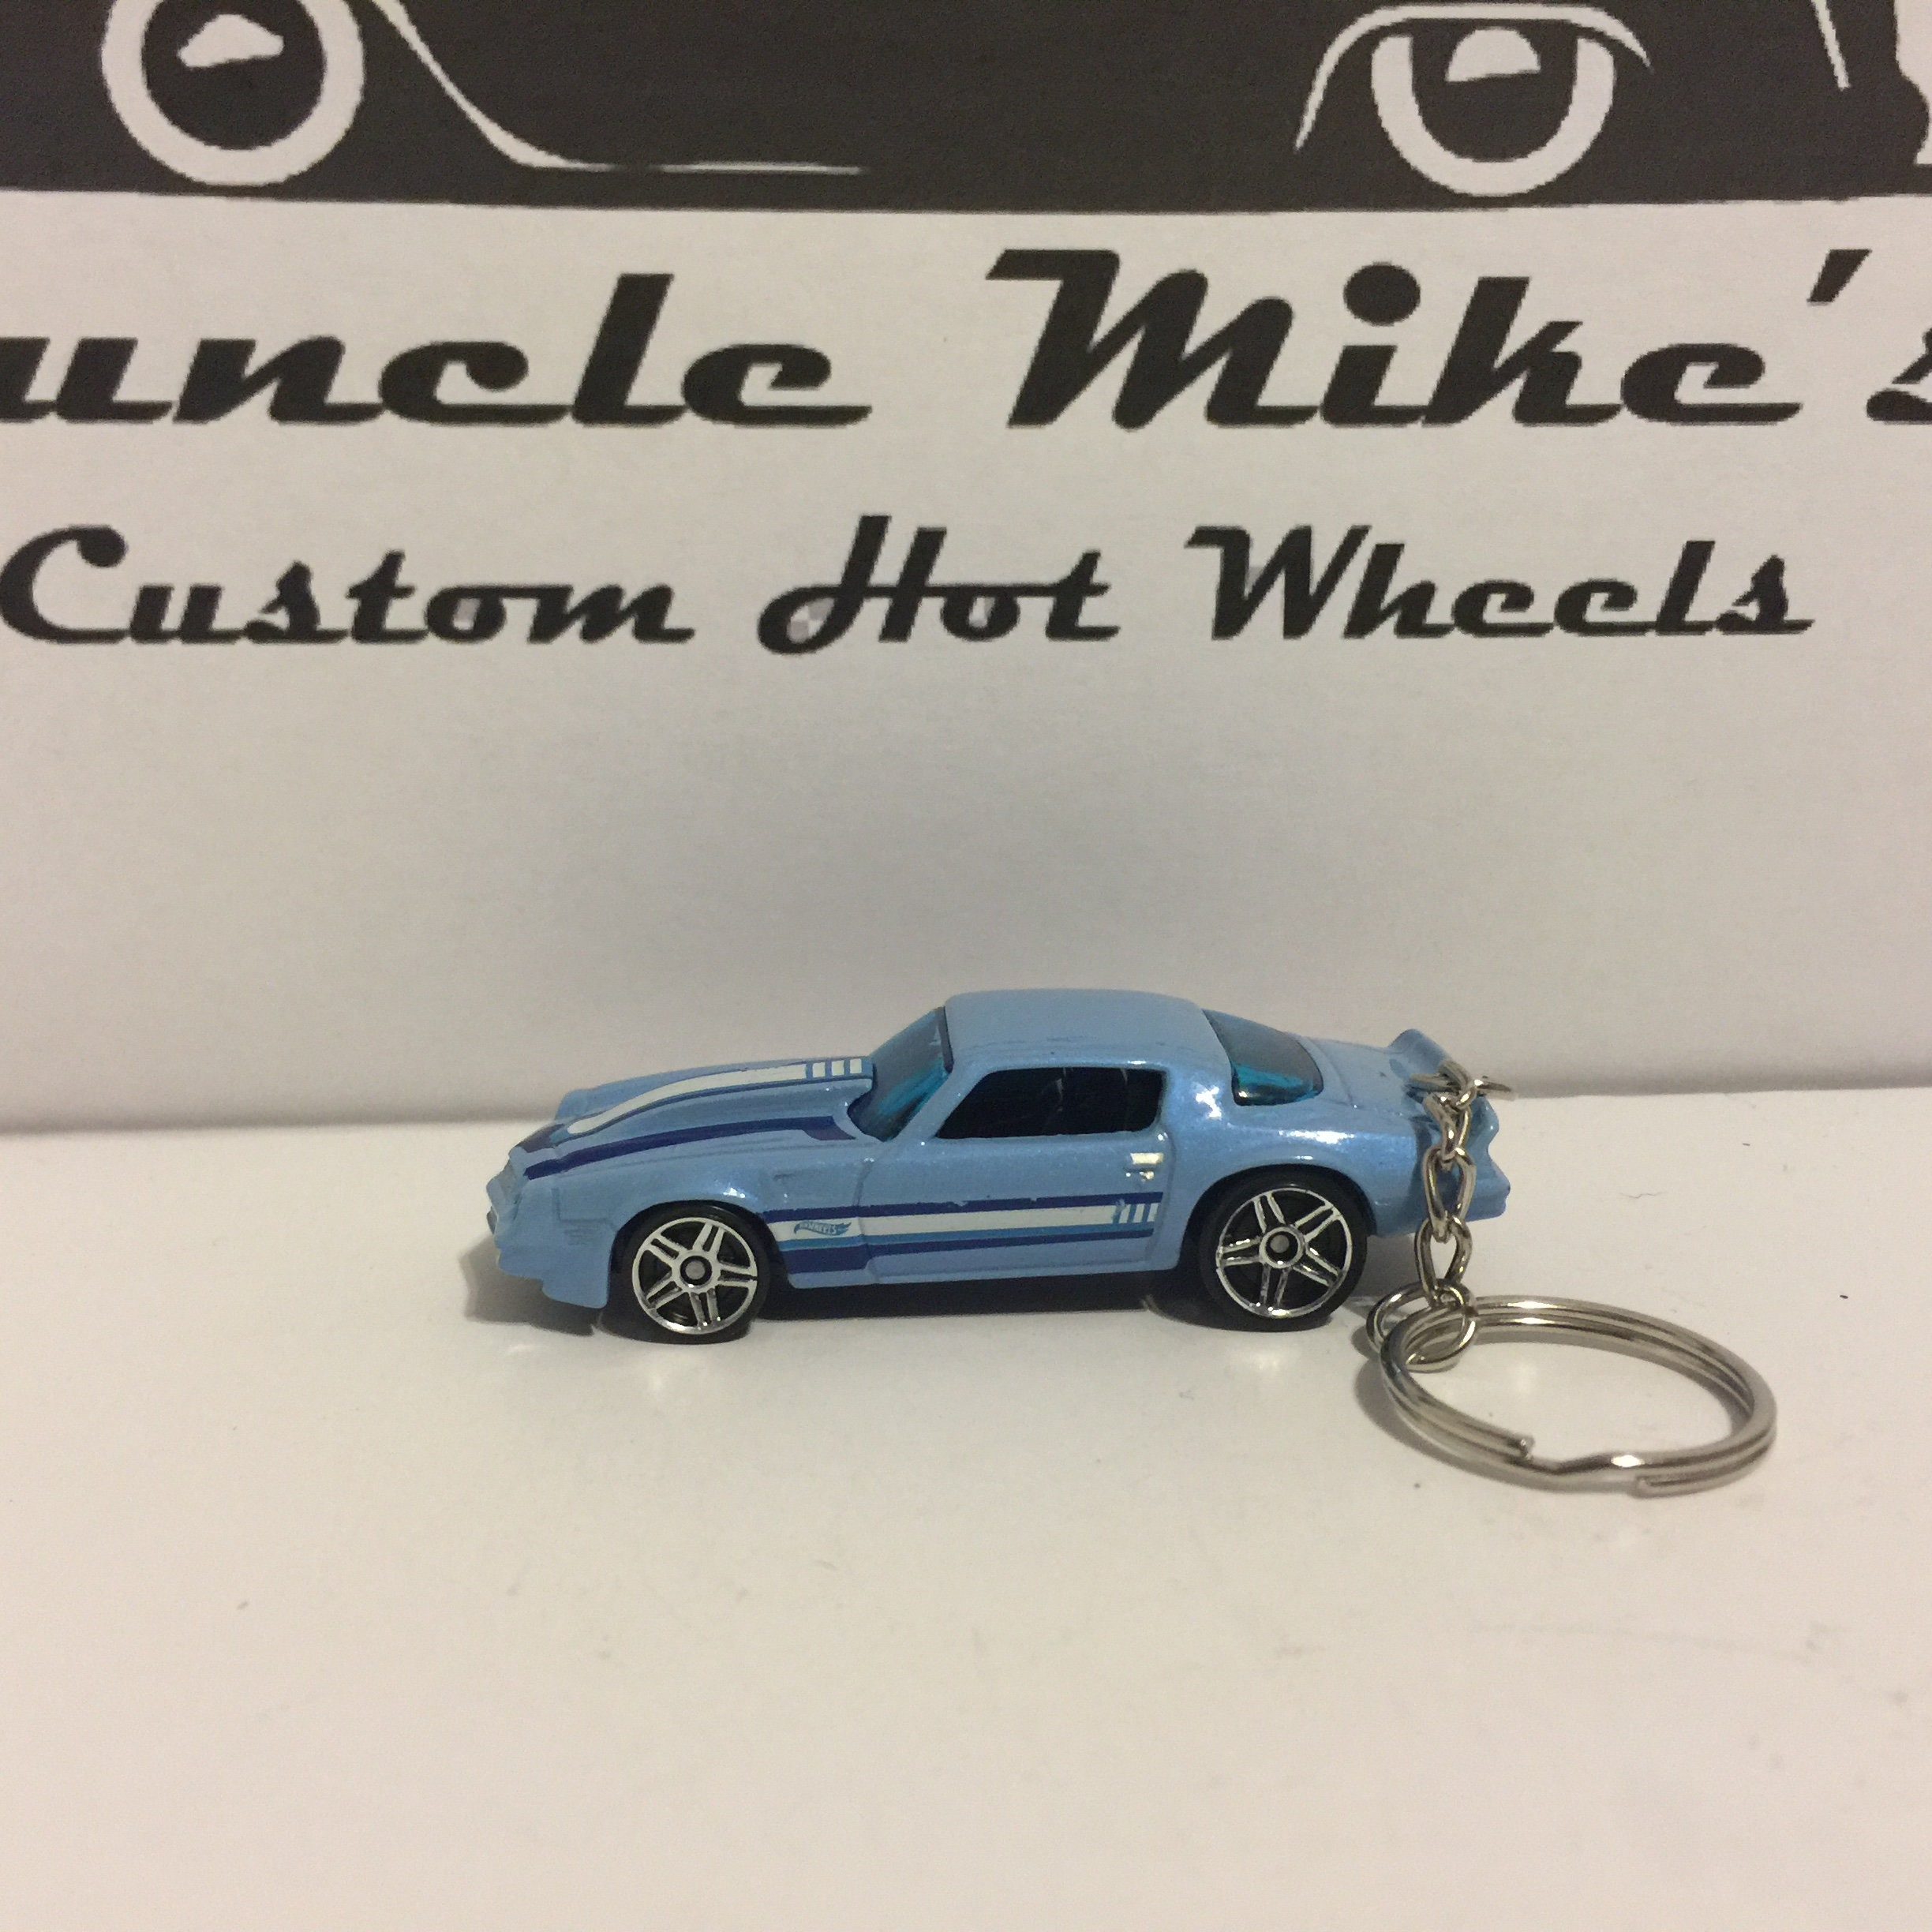 Custom Hot Wheels '81 1981 Camaro Christmas Ornament,  Keychain or Zipper Pull